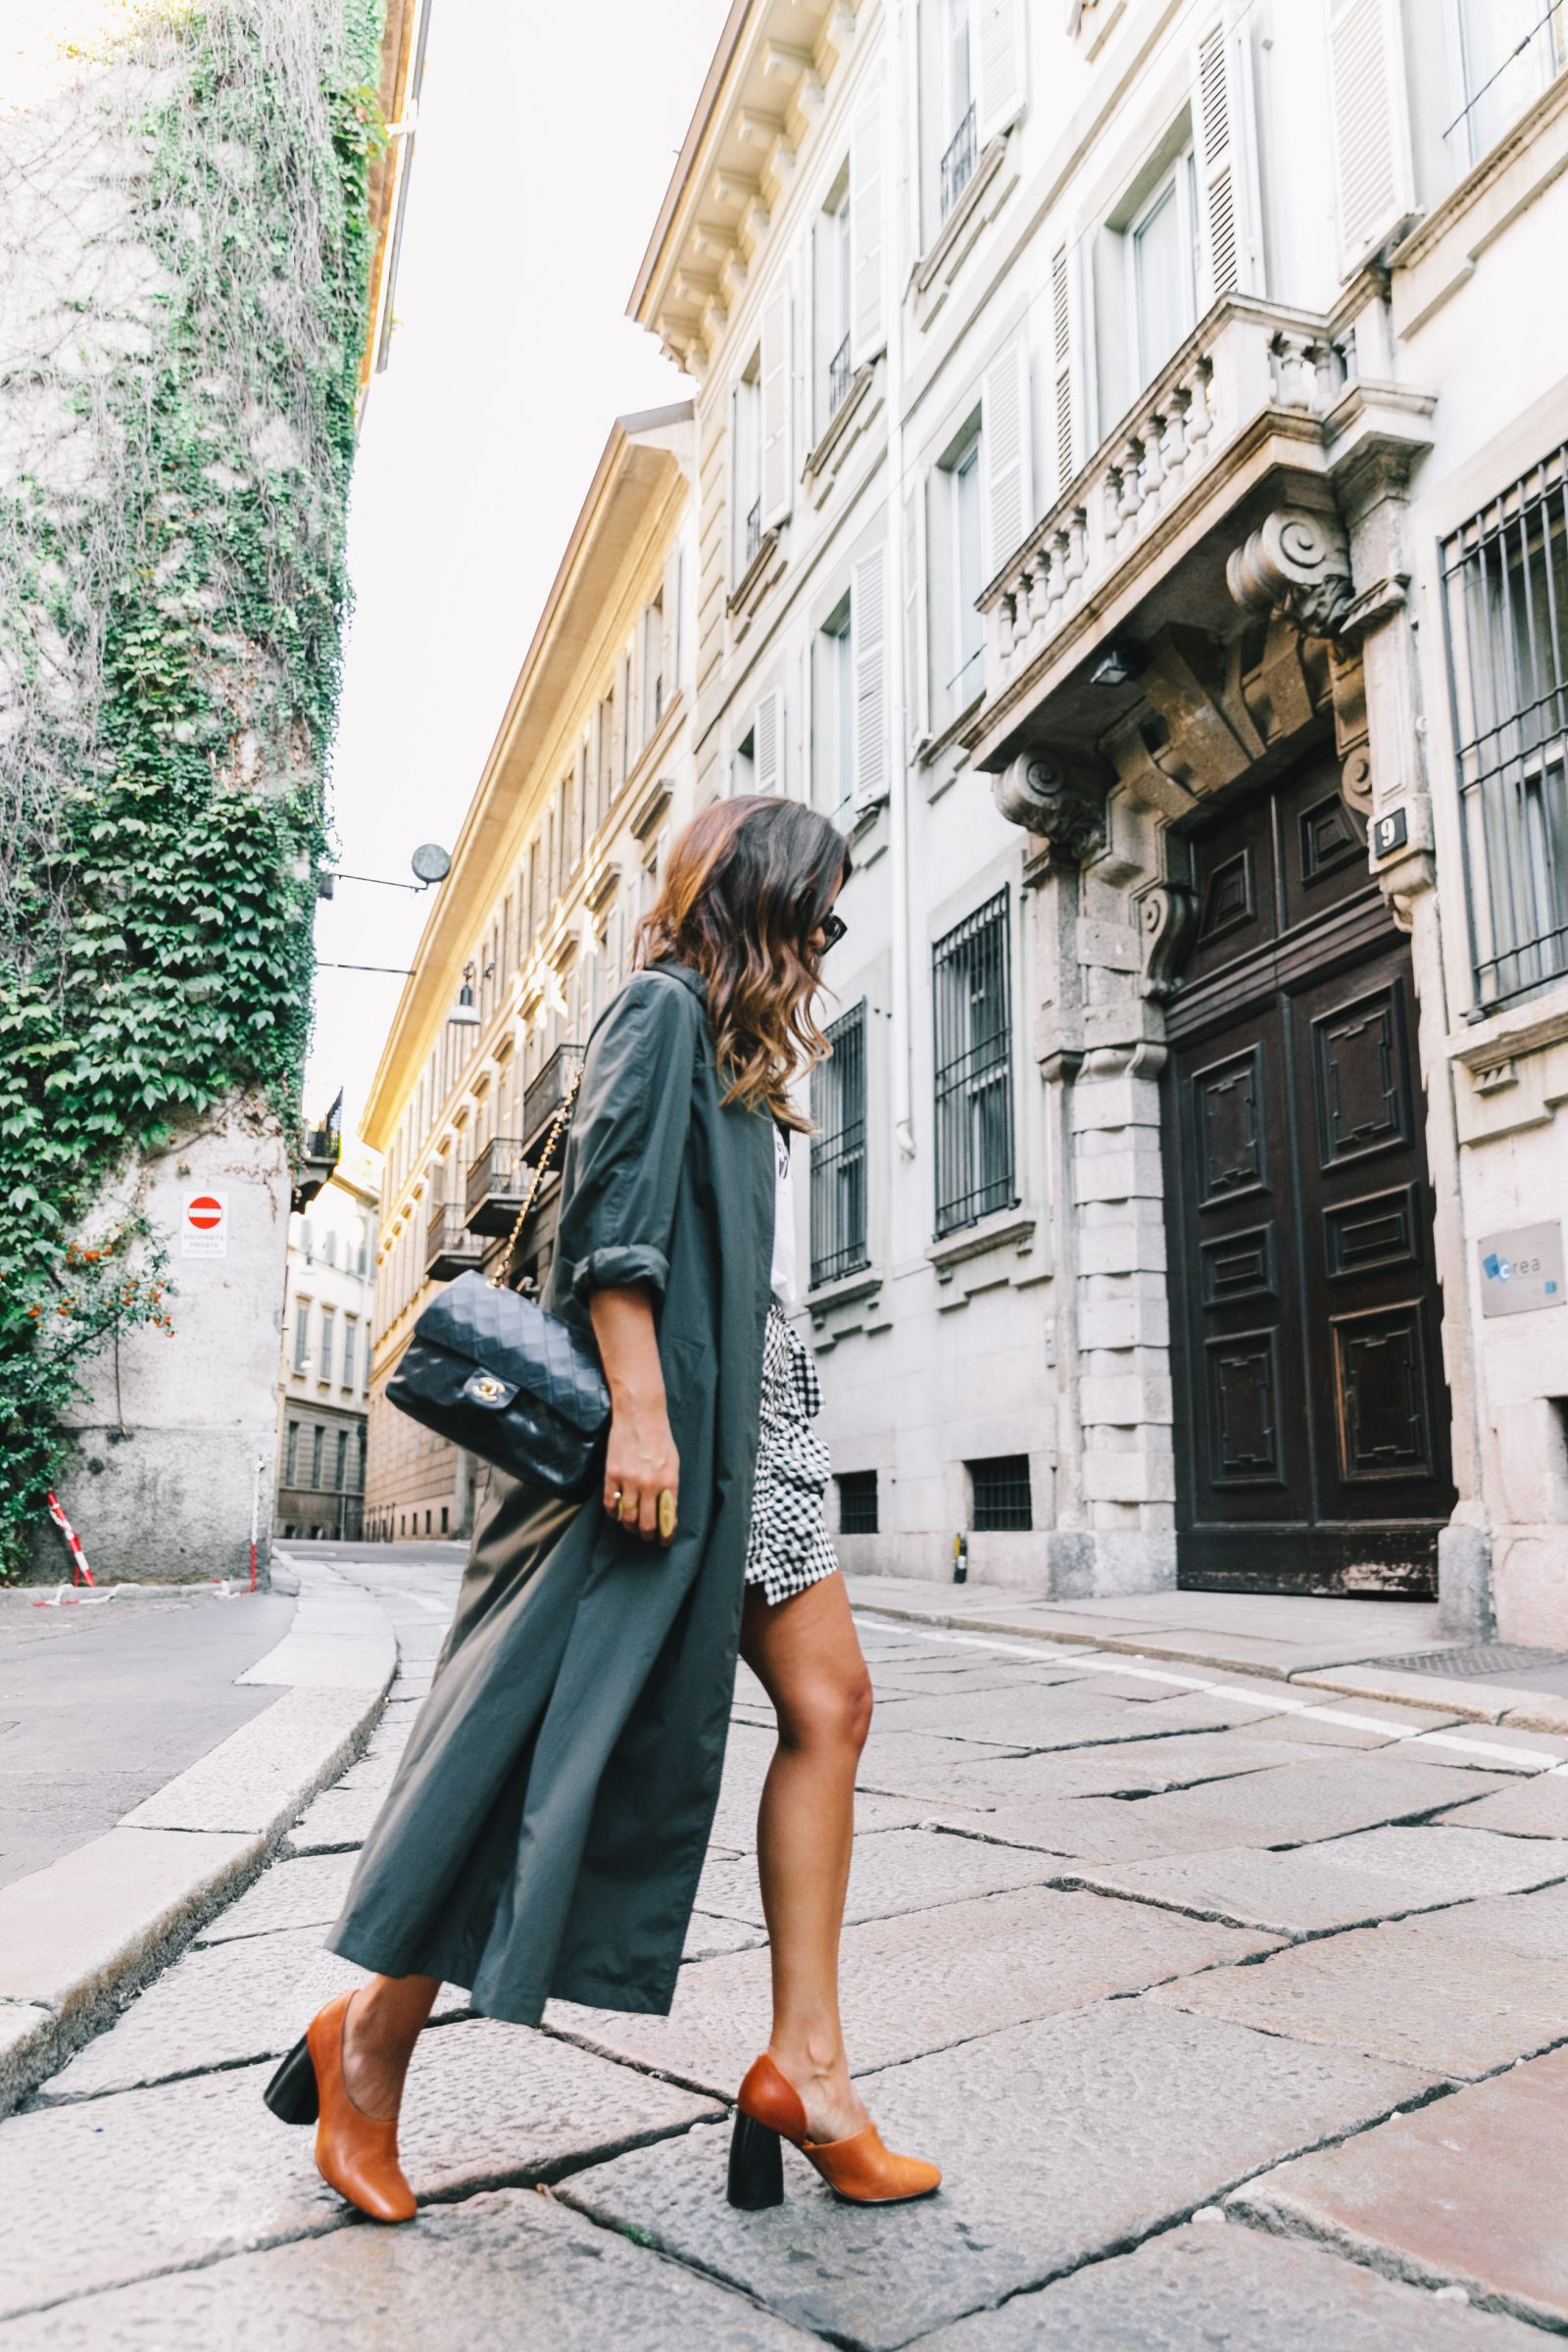 mfw-milan_fashion_week_ss17-street_style-outfits-collage_vintage-bottega_veneta-bluemarine-jil_sander-46